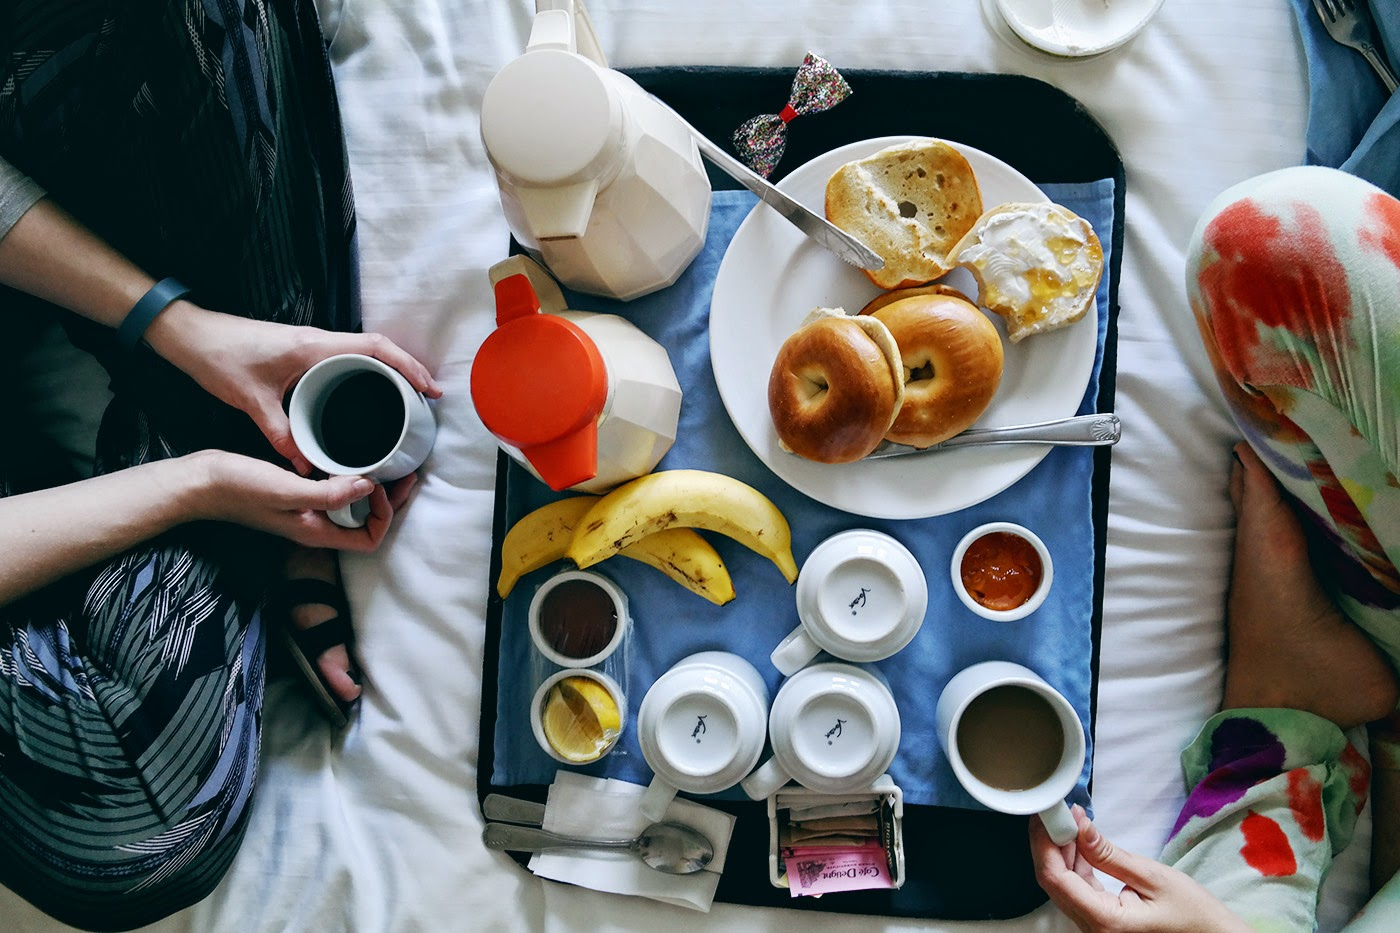 Do Cruise Ships Have Room Service, and Is It Free? | Cruise.Blog